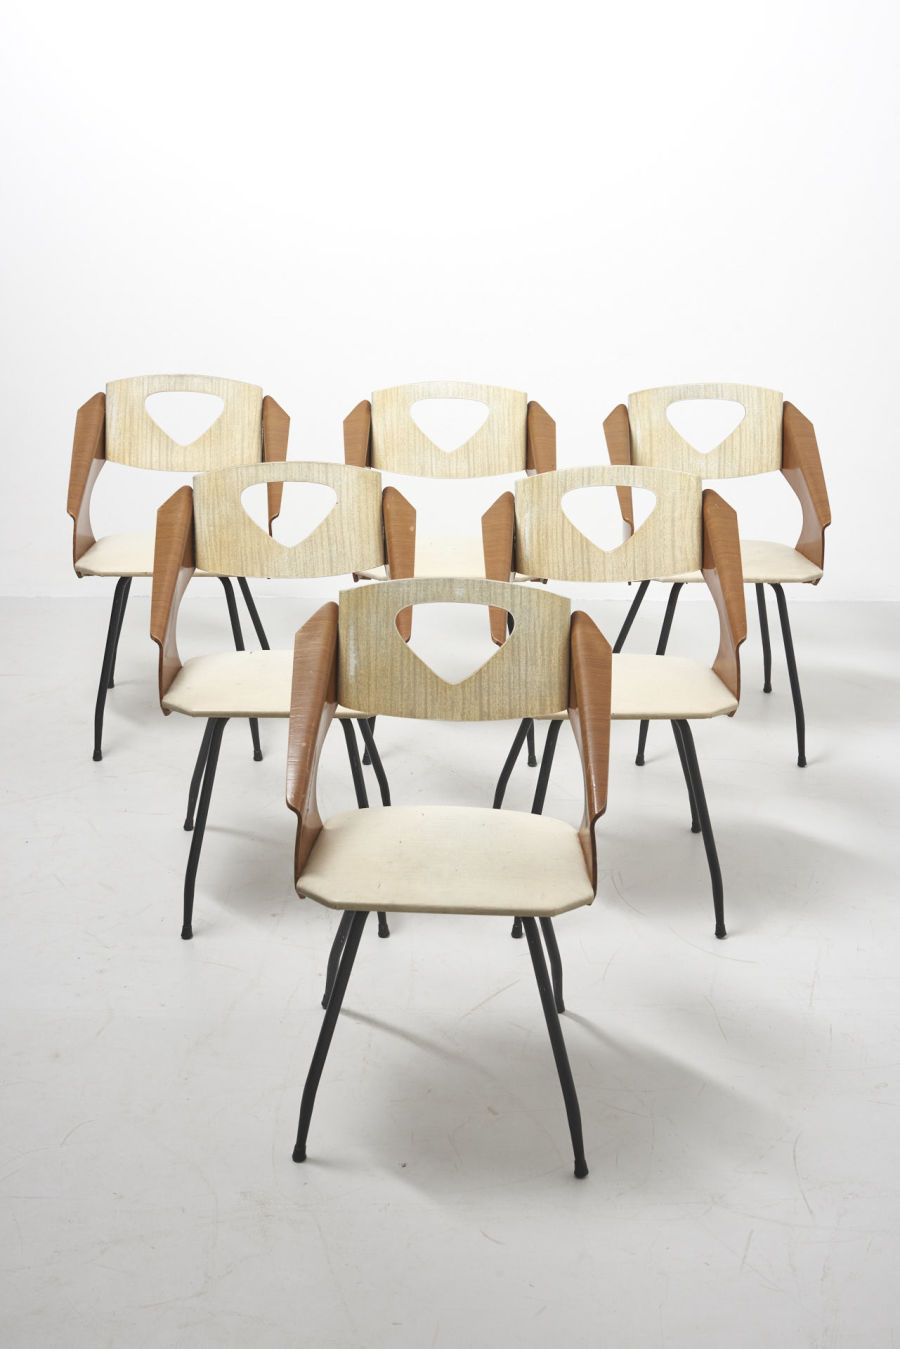 modestfurniture-vintage-2473-italian-dining-chairs-1950-plywood01